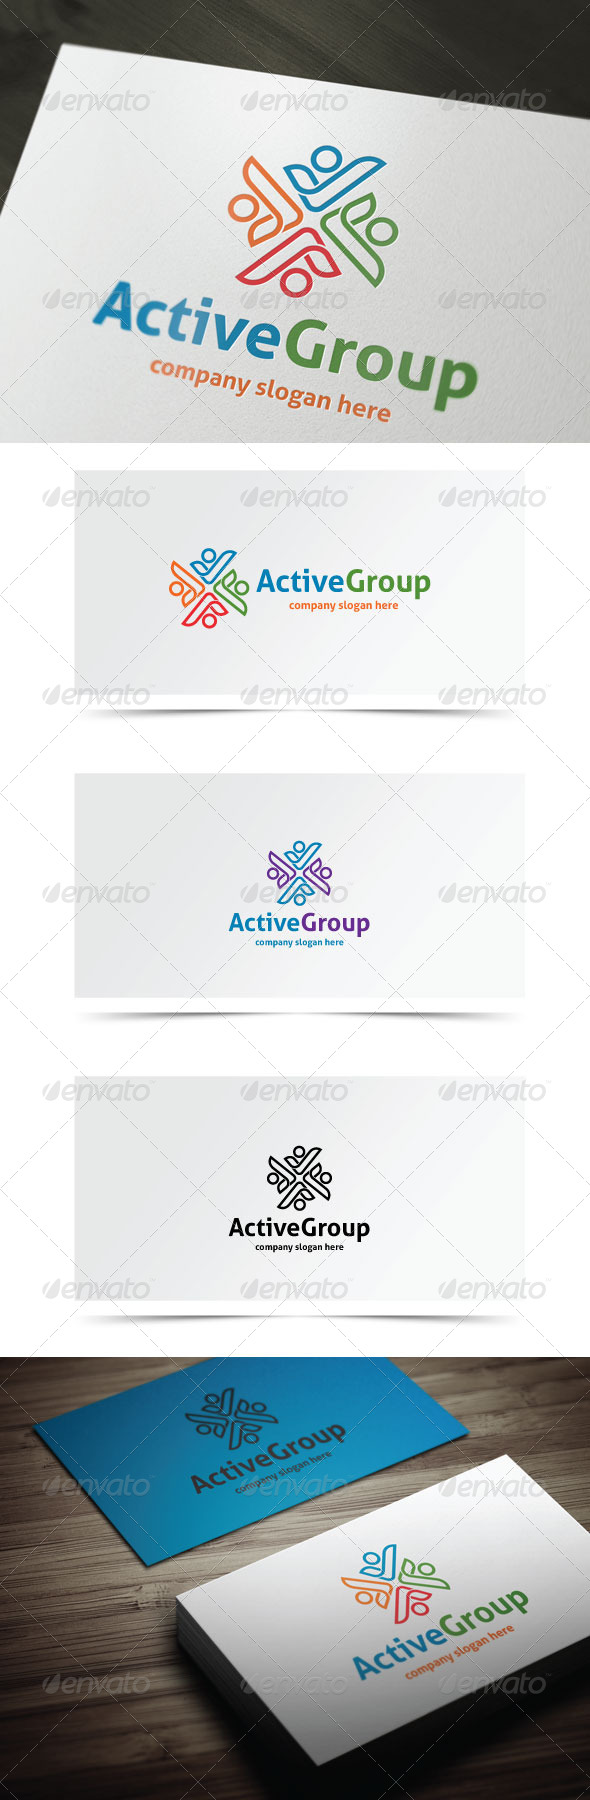 GraphicRiver Active Group 7056171